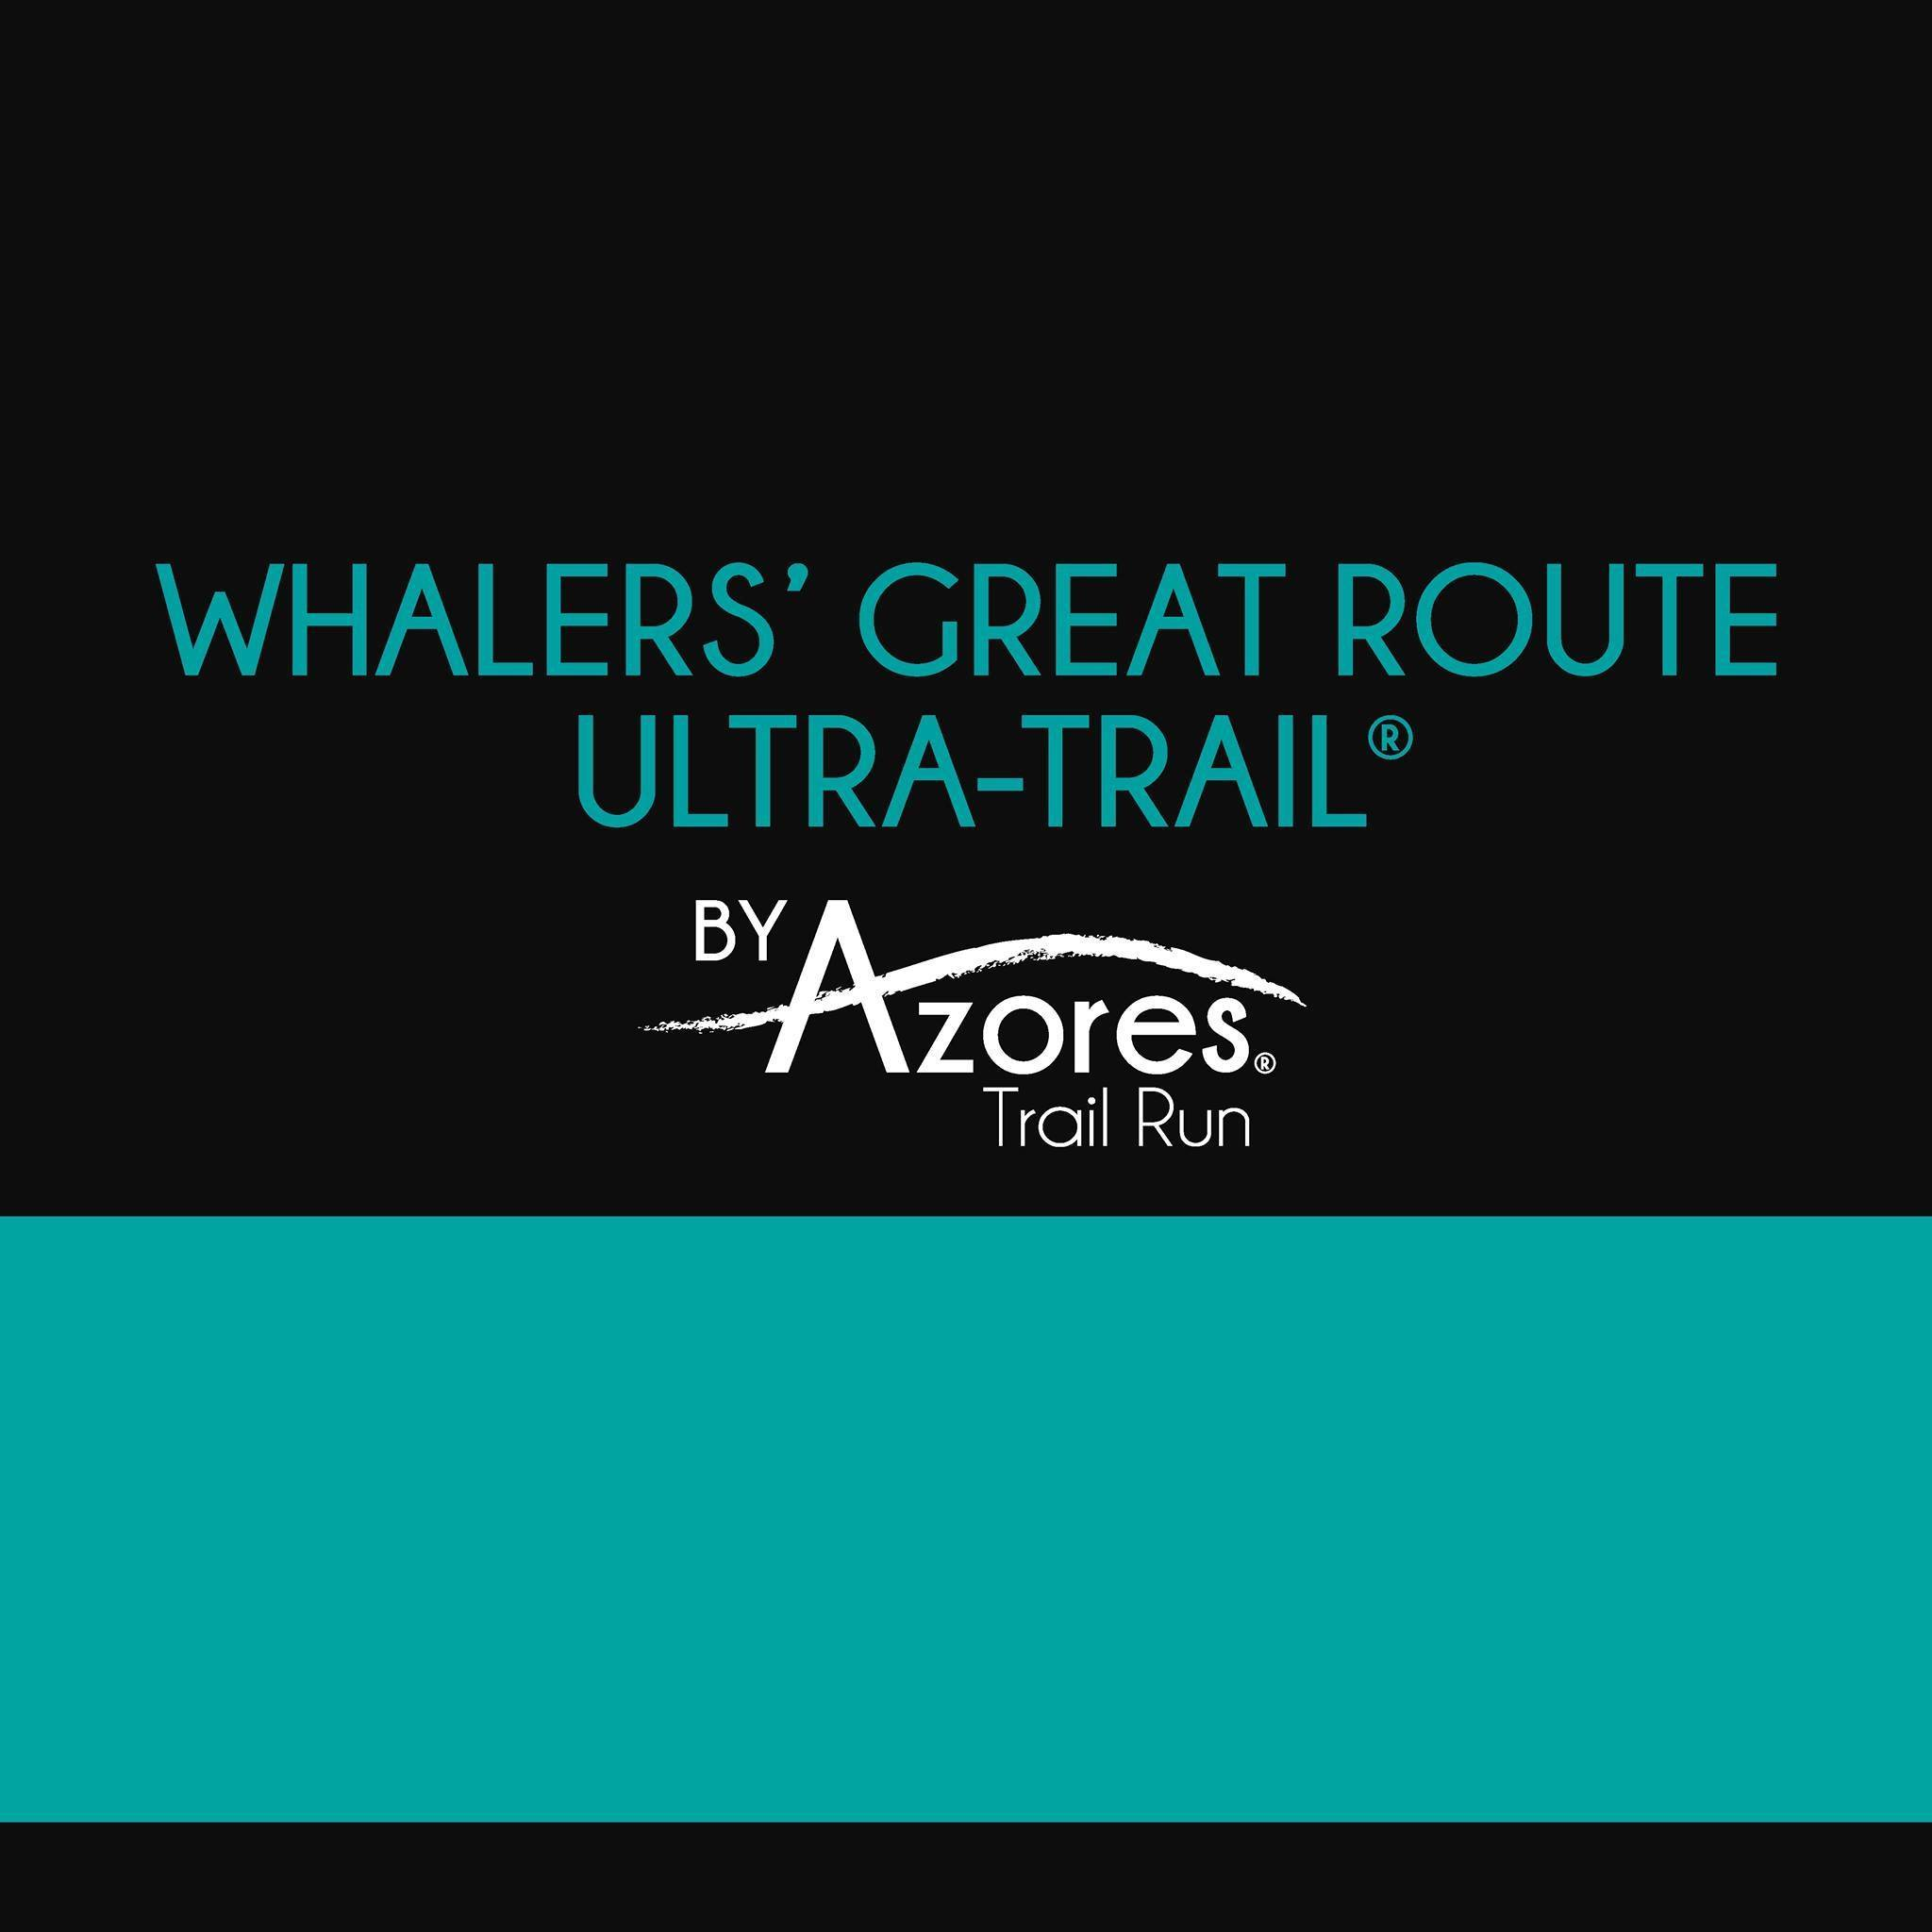 Logo-Whalers-Great-Route-Ultra-Trail